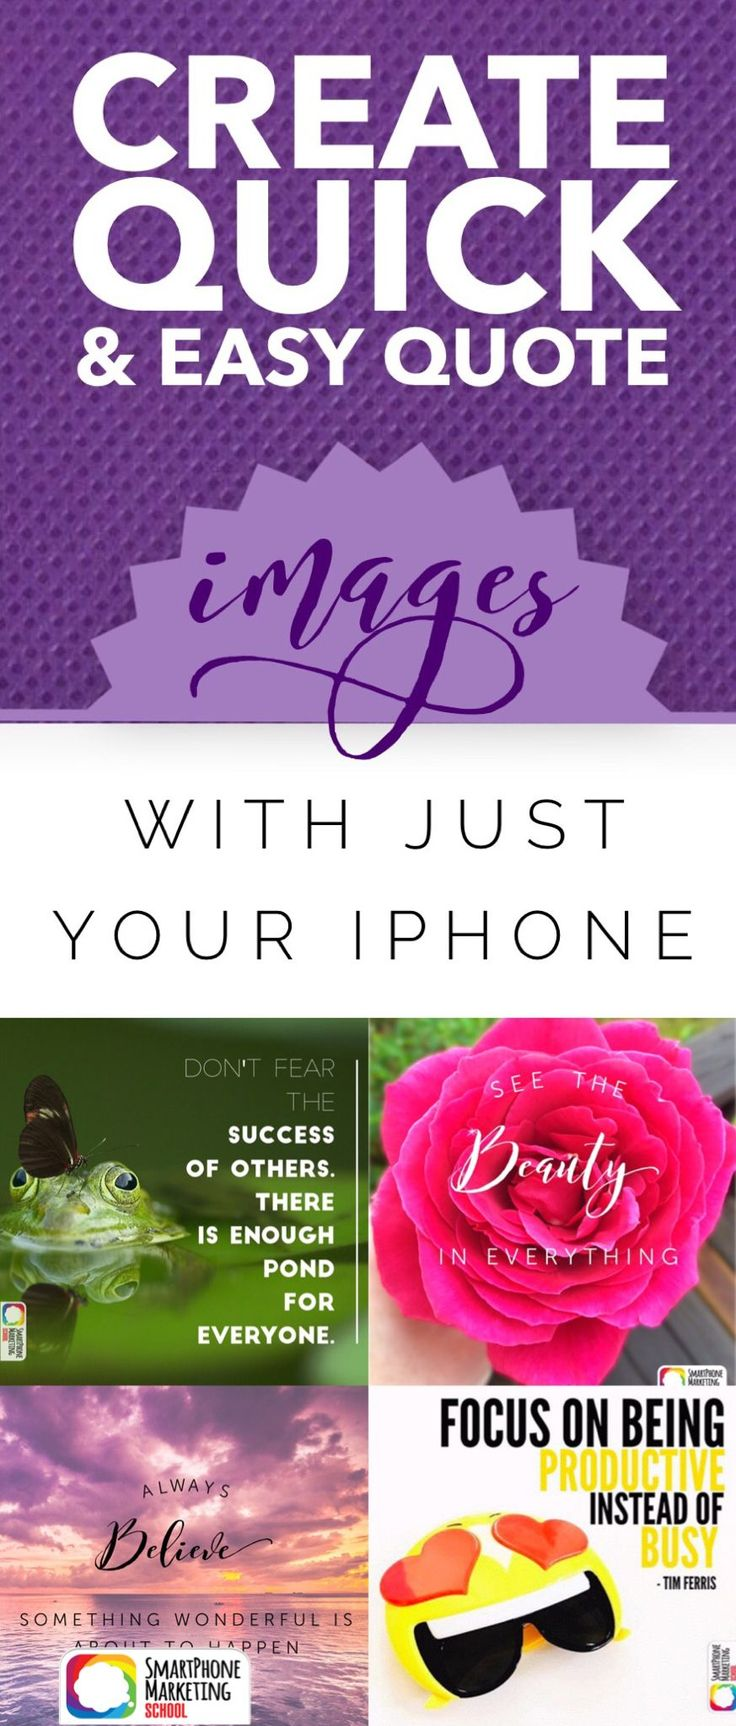 Create an inspirational quote image photo in under a minute with the Word Swag app. Create beautiful graphic designs with just your iPhone in this tutorial from the Smartphone Marketing School.